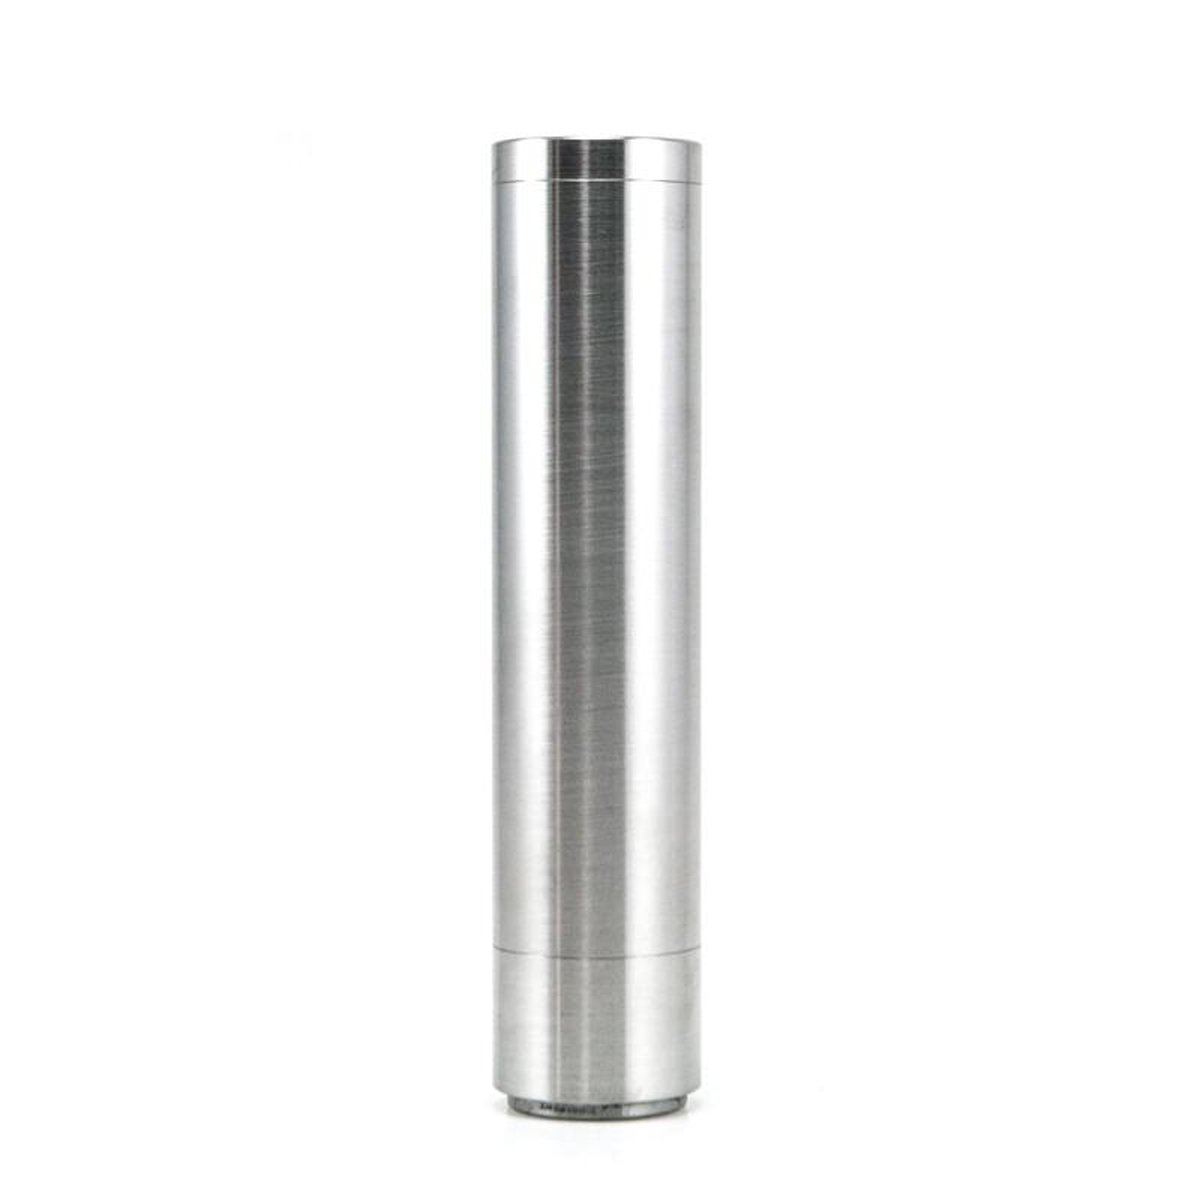 Flagship v2 Mech Mod by SMK Mods